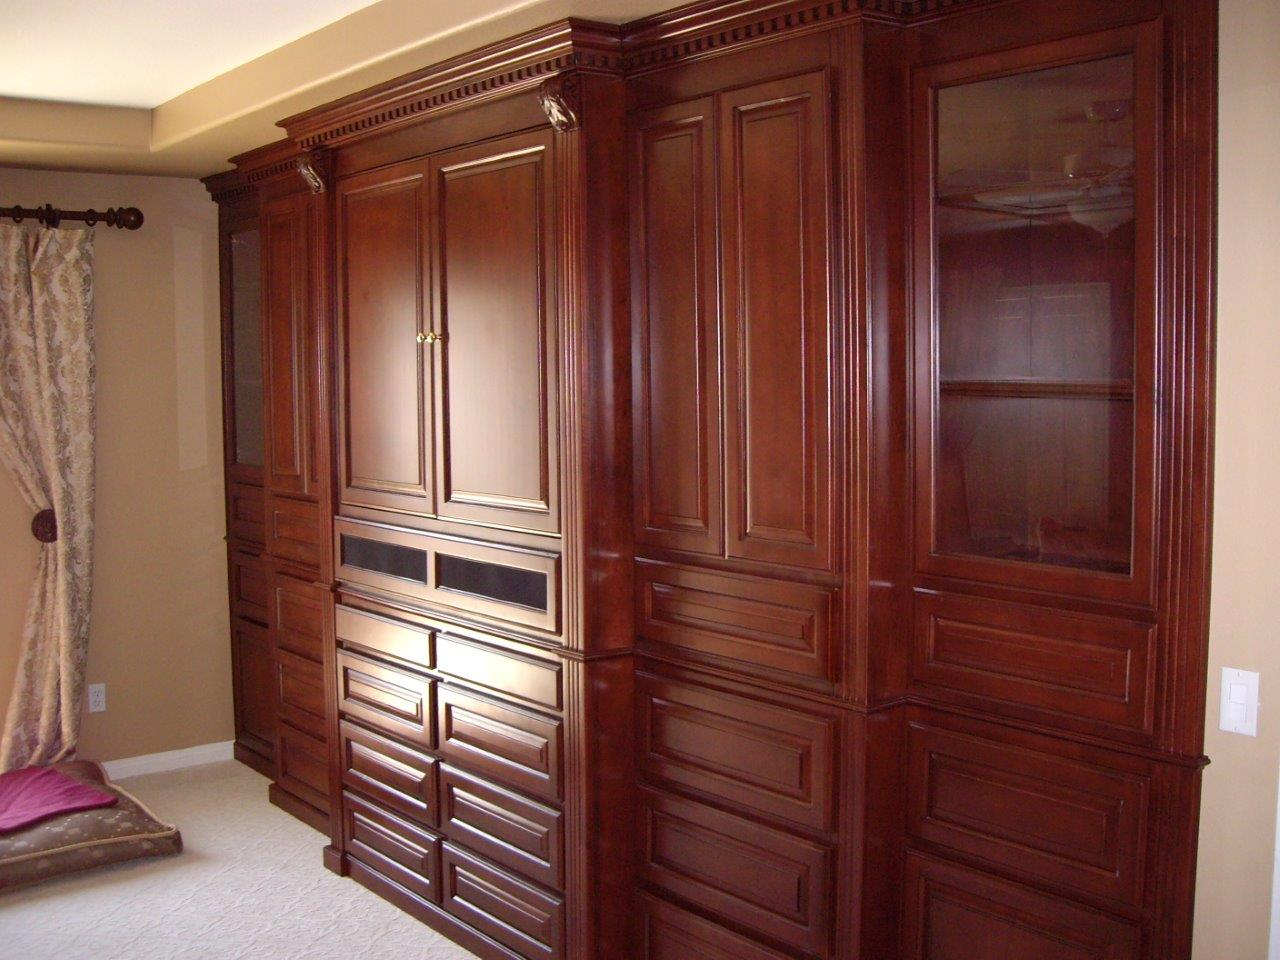 murphy beds and bedroom cabinets woodwork creations. Black Bedroom Furniture Sets. Home Design Ideas